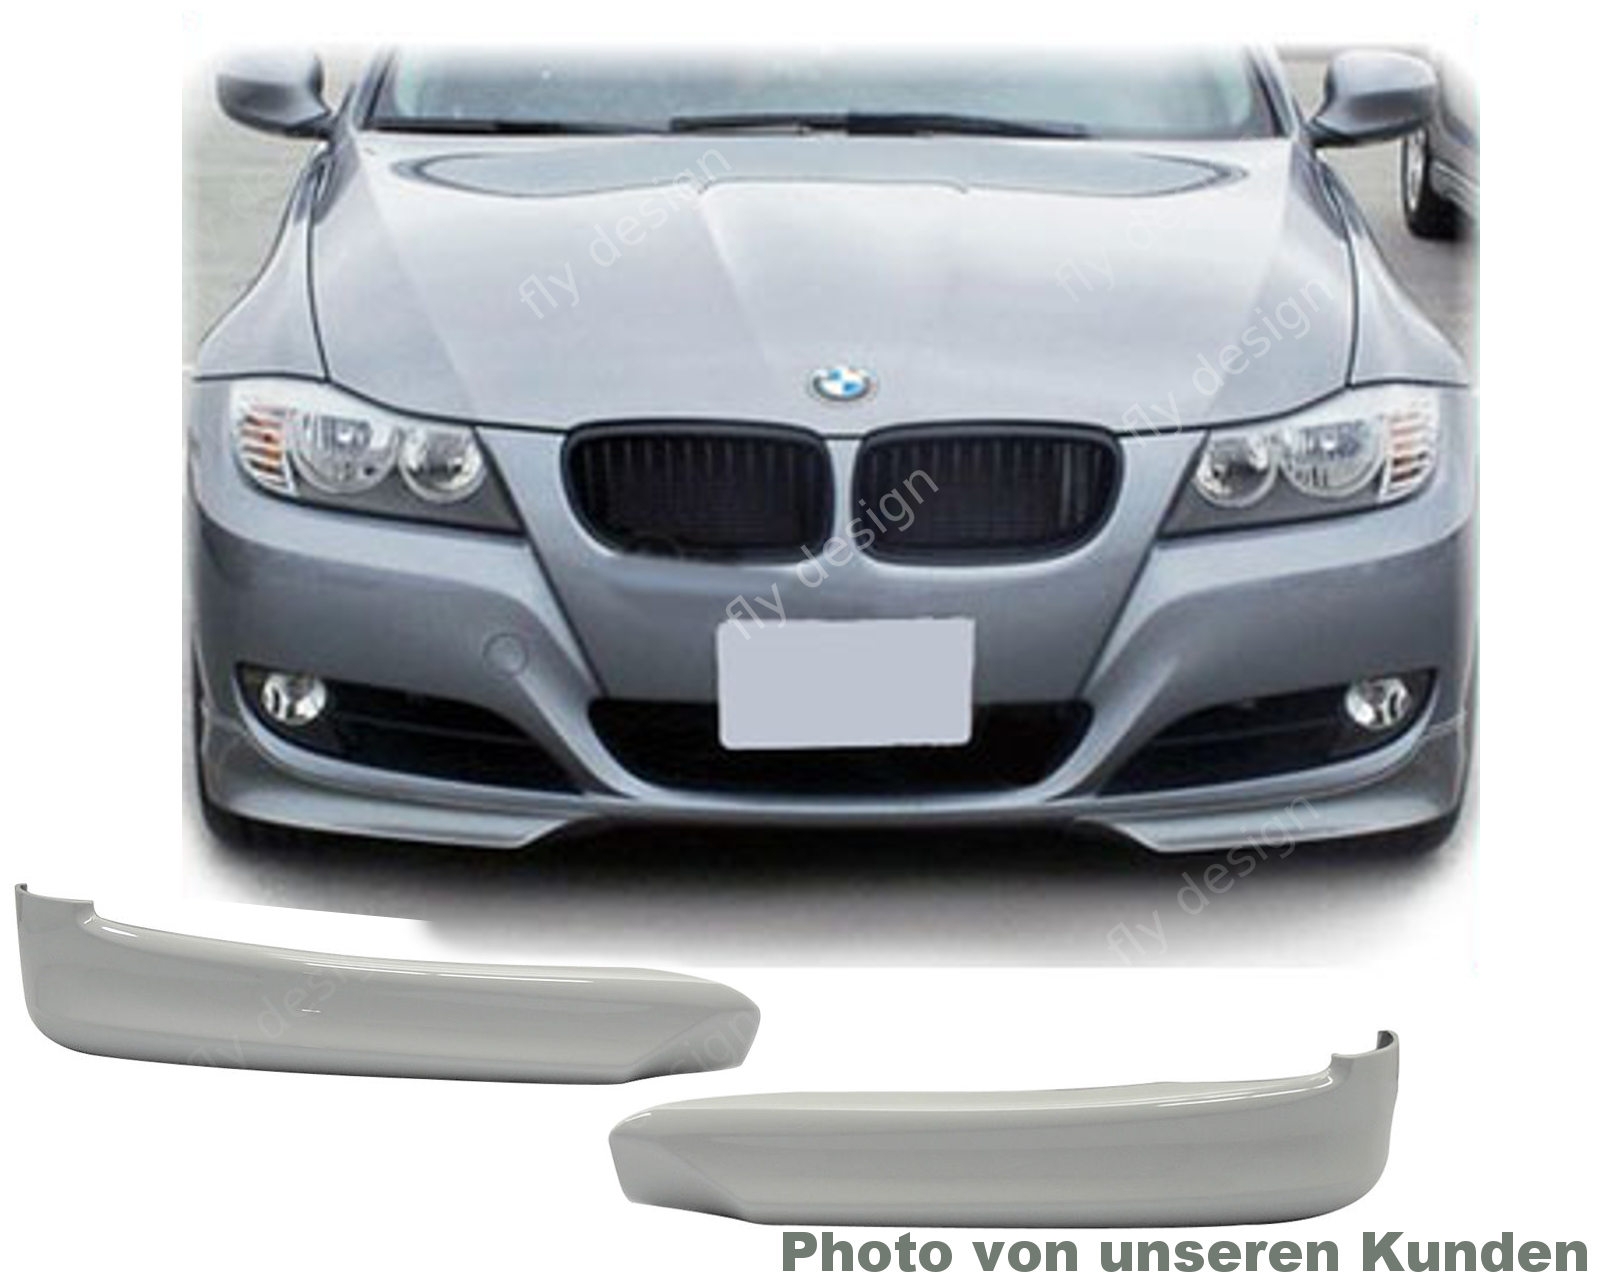 bmw e90 e91 lci frontspoiler front lippe spoiler 08 11. Black Bedroom Furniture Sets. Home Design Ideas